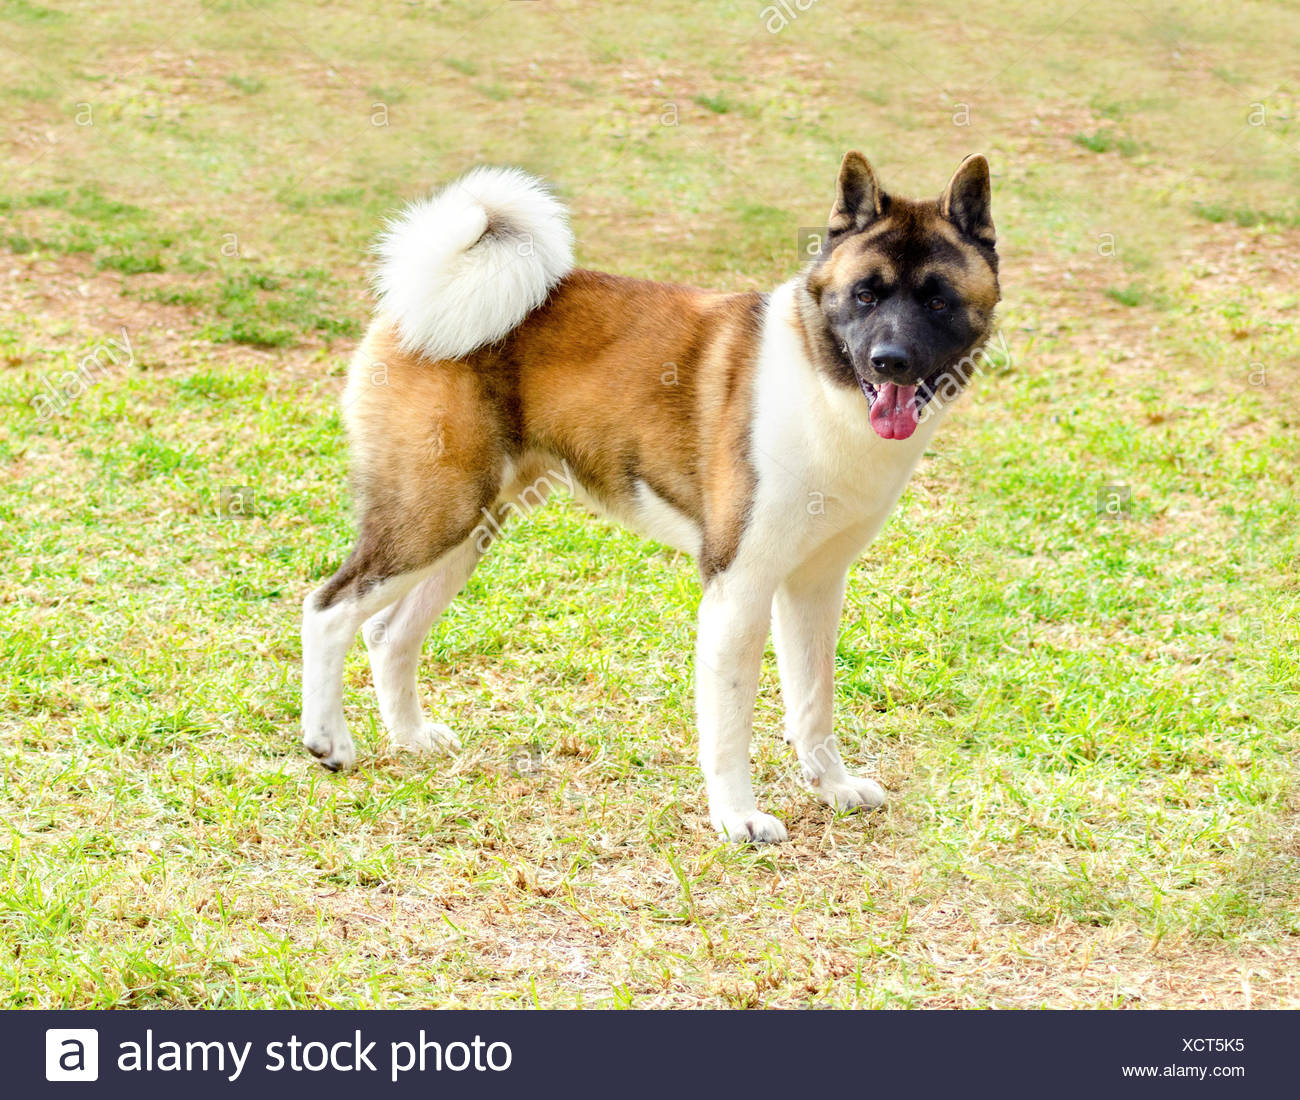 A Profile View Of A Sable White And Brown Pinto American Akita Dog Standing On The Grass Distinctive For Its Plush Tail That Curls Over His Back And For The Black Mask